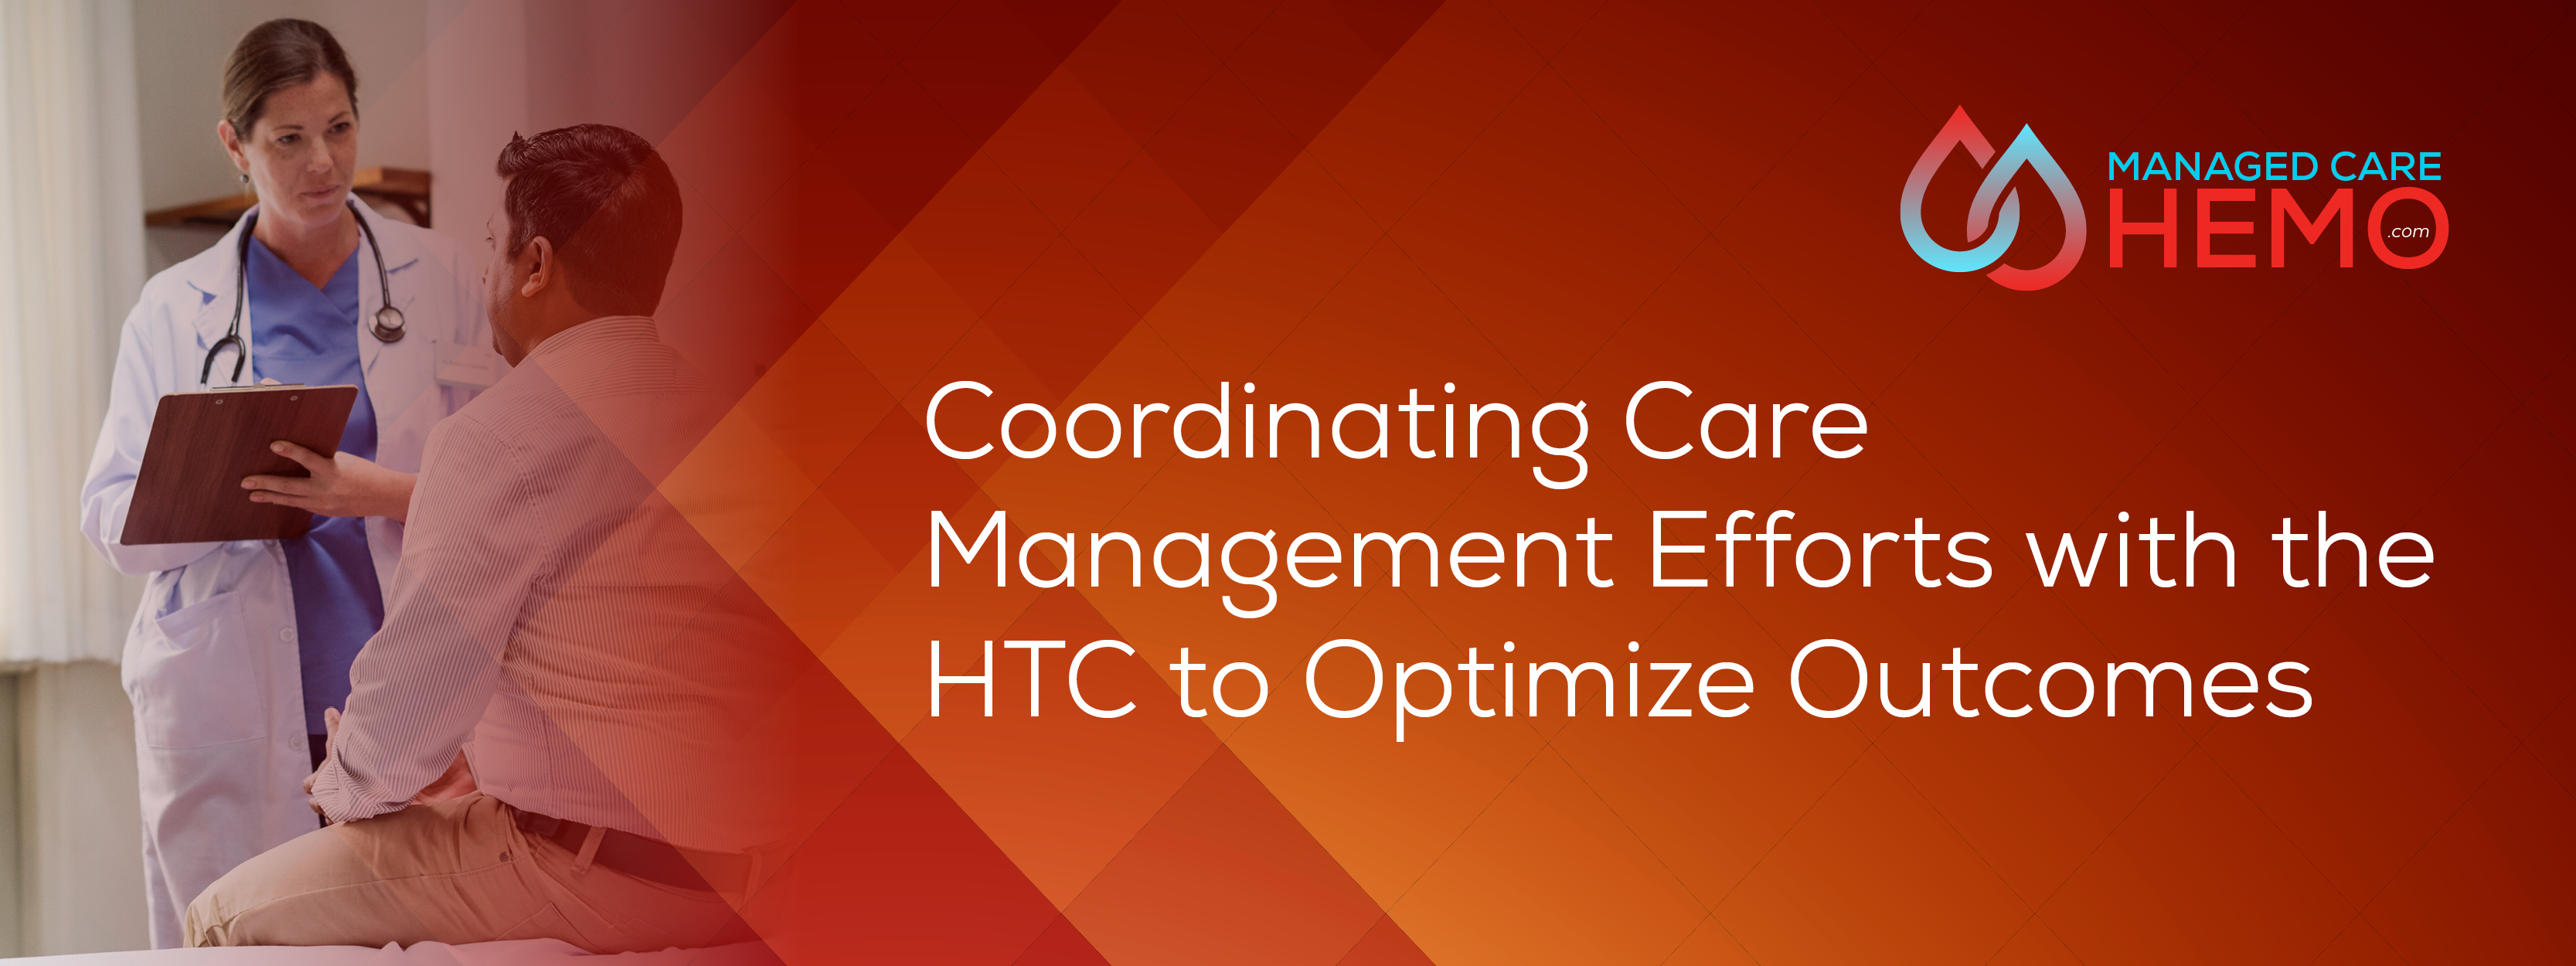 Coordinating Care Management Efforts with the HTC  to Optimize Outcomes